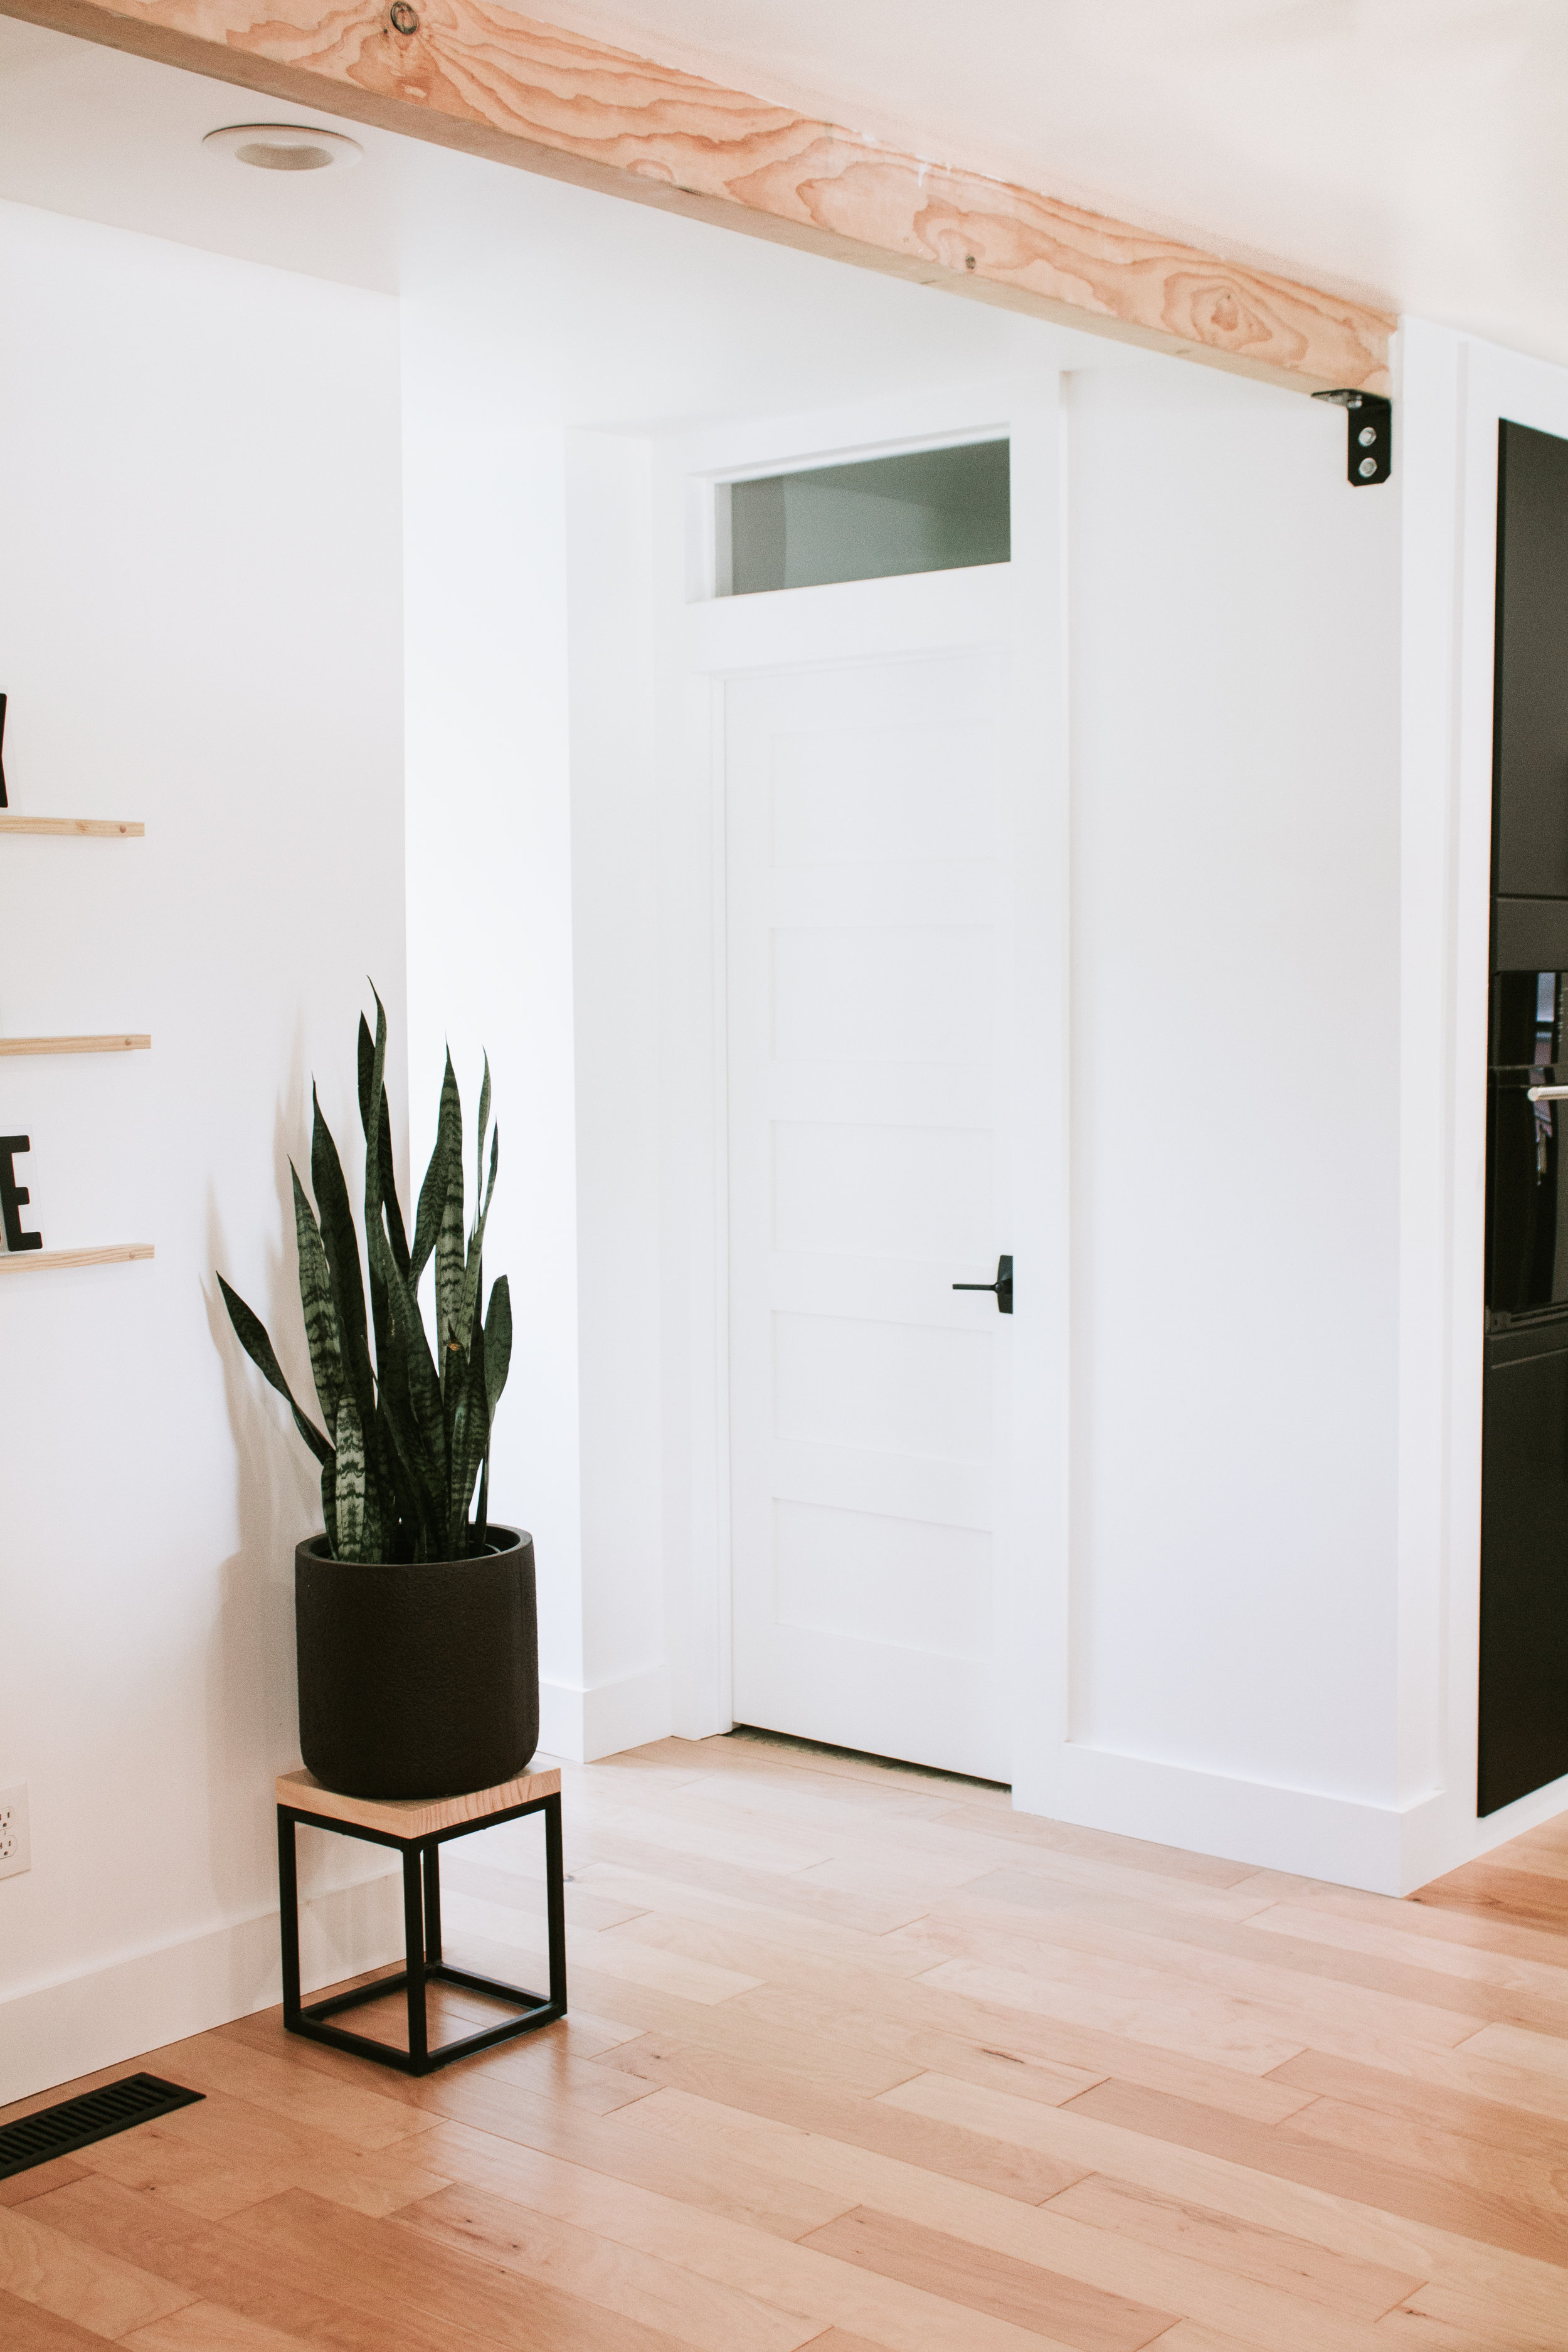 4 reasons you should install light colored wood floors in your home. Light wood floors vs. dark wood floors. What type of floor should you get for your house? What's better light or dark floors? Interior Design tips for what floors you should put in your home.